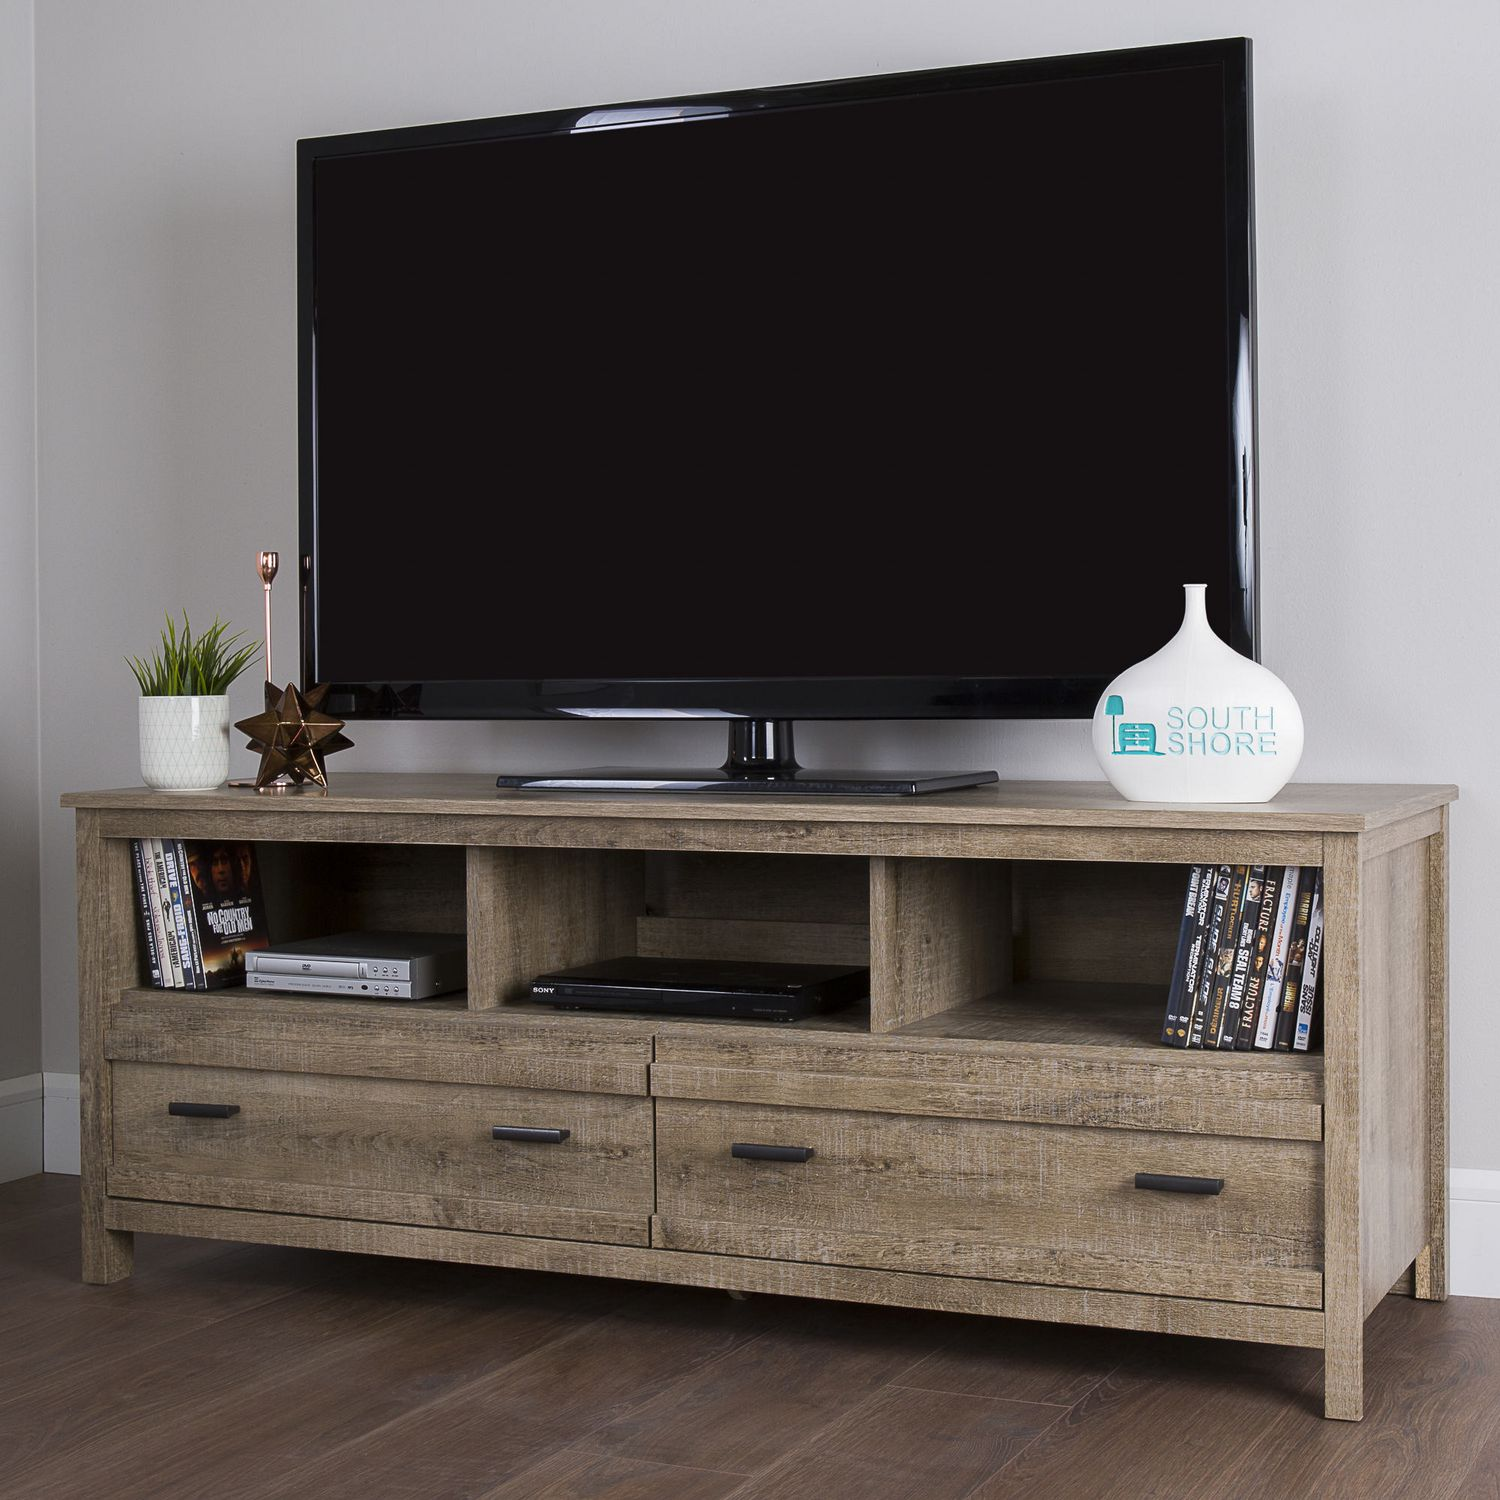 South Shore Exhibit Tv Stand For Tv S Up To 60 Inches Walmart Canada